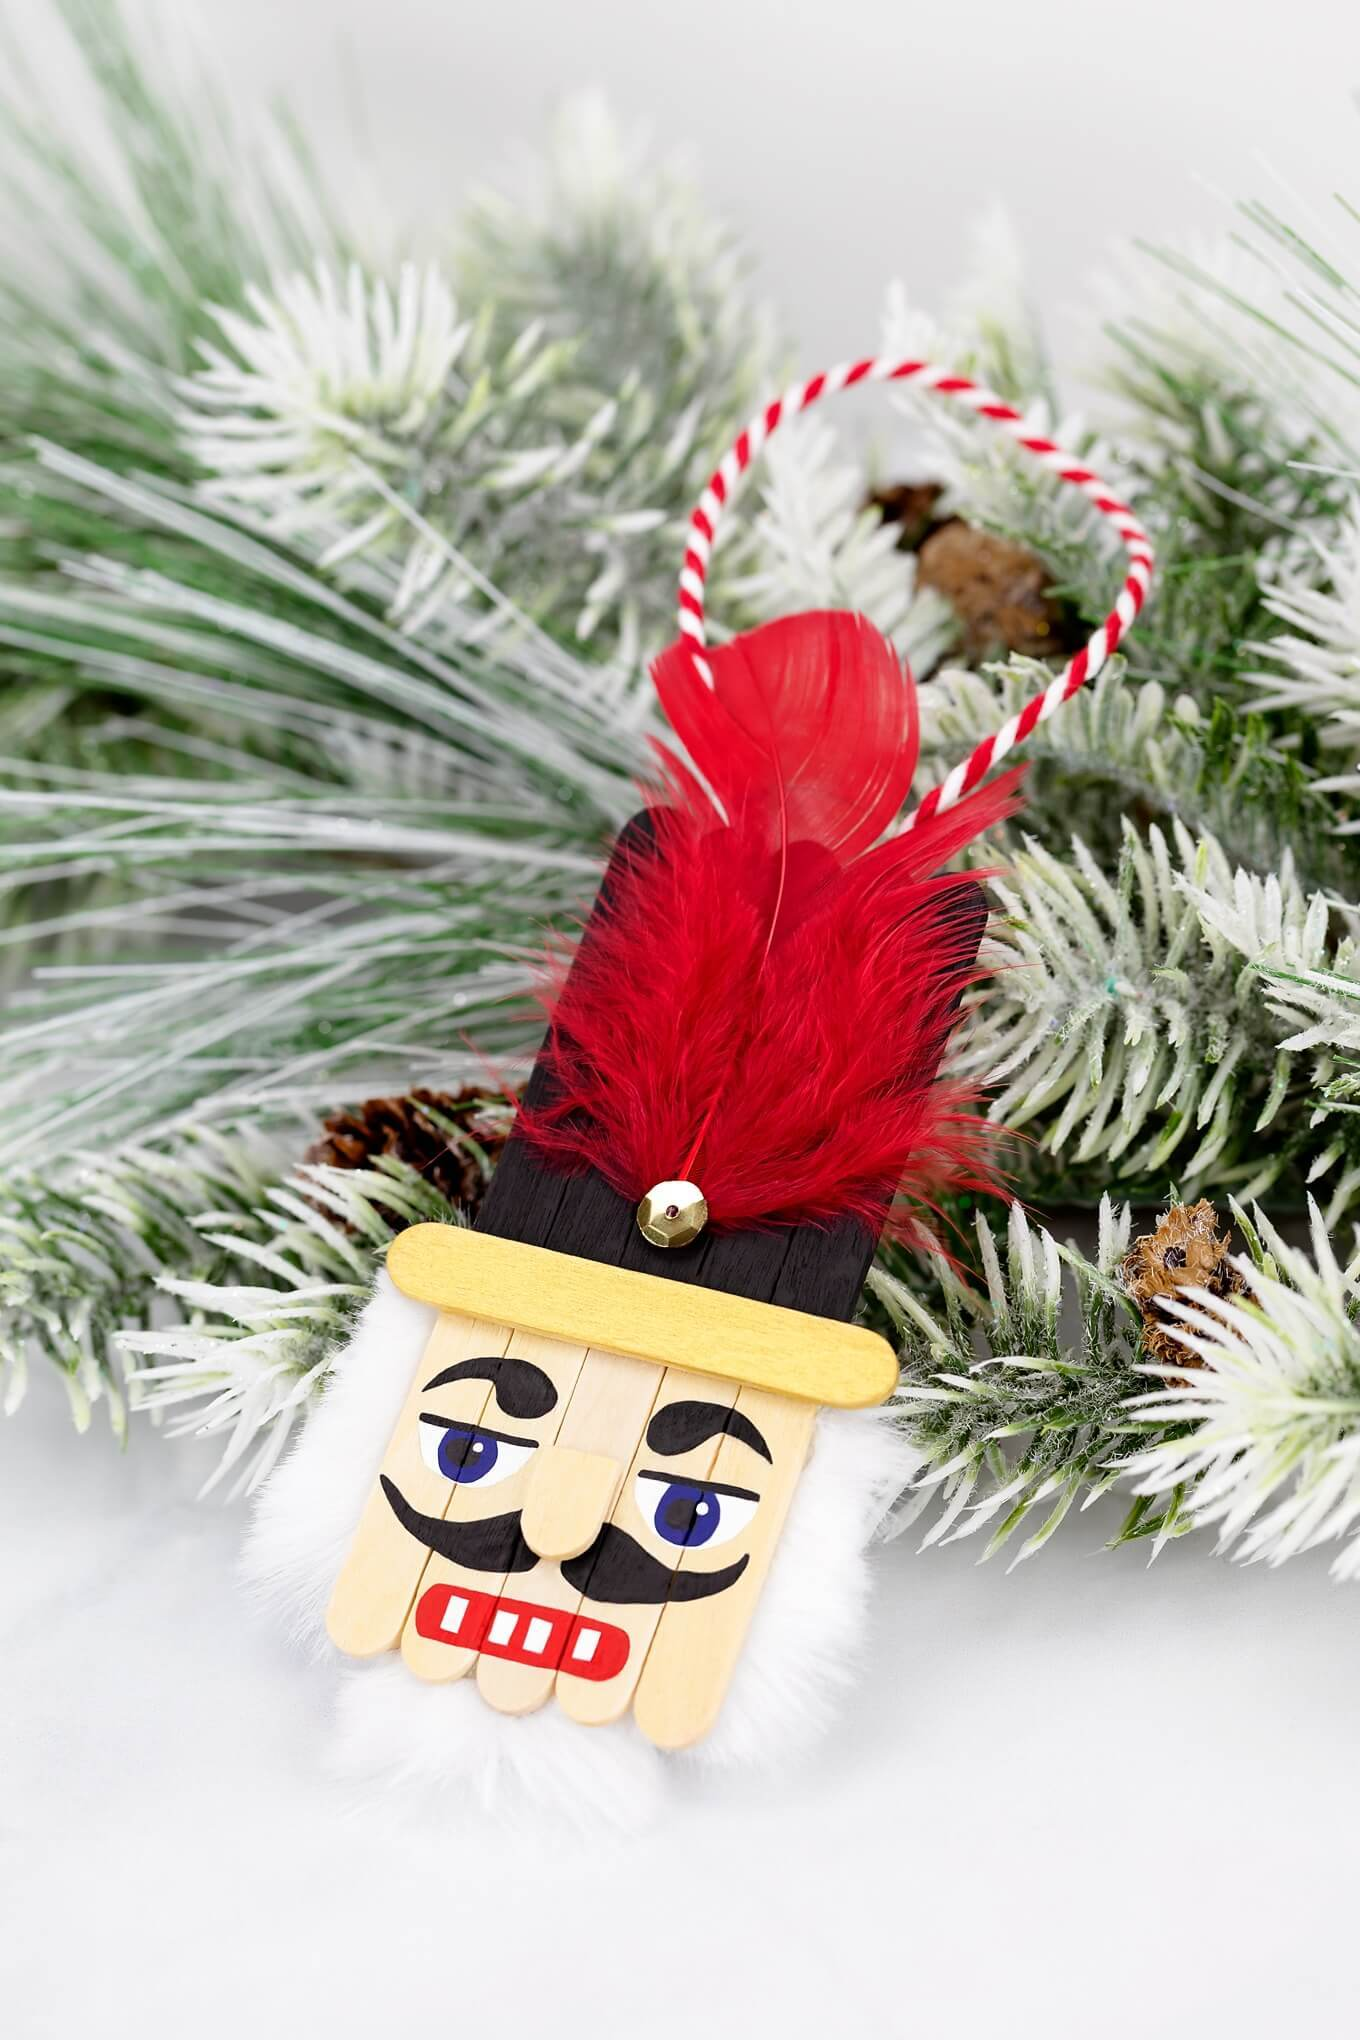 NUTCRACKER POPSICLE STICK ORNAMENT